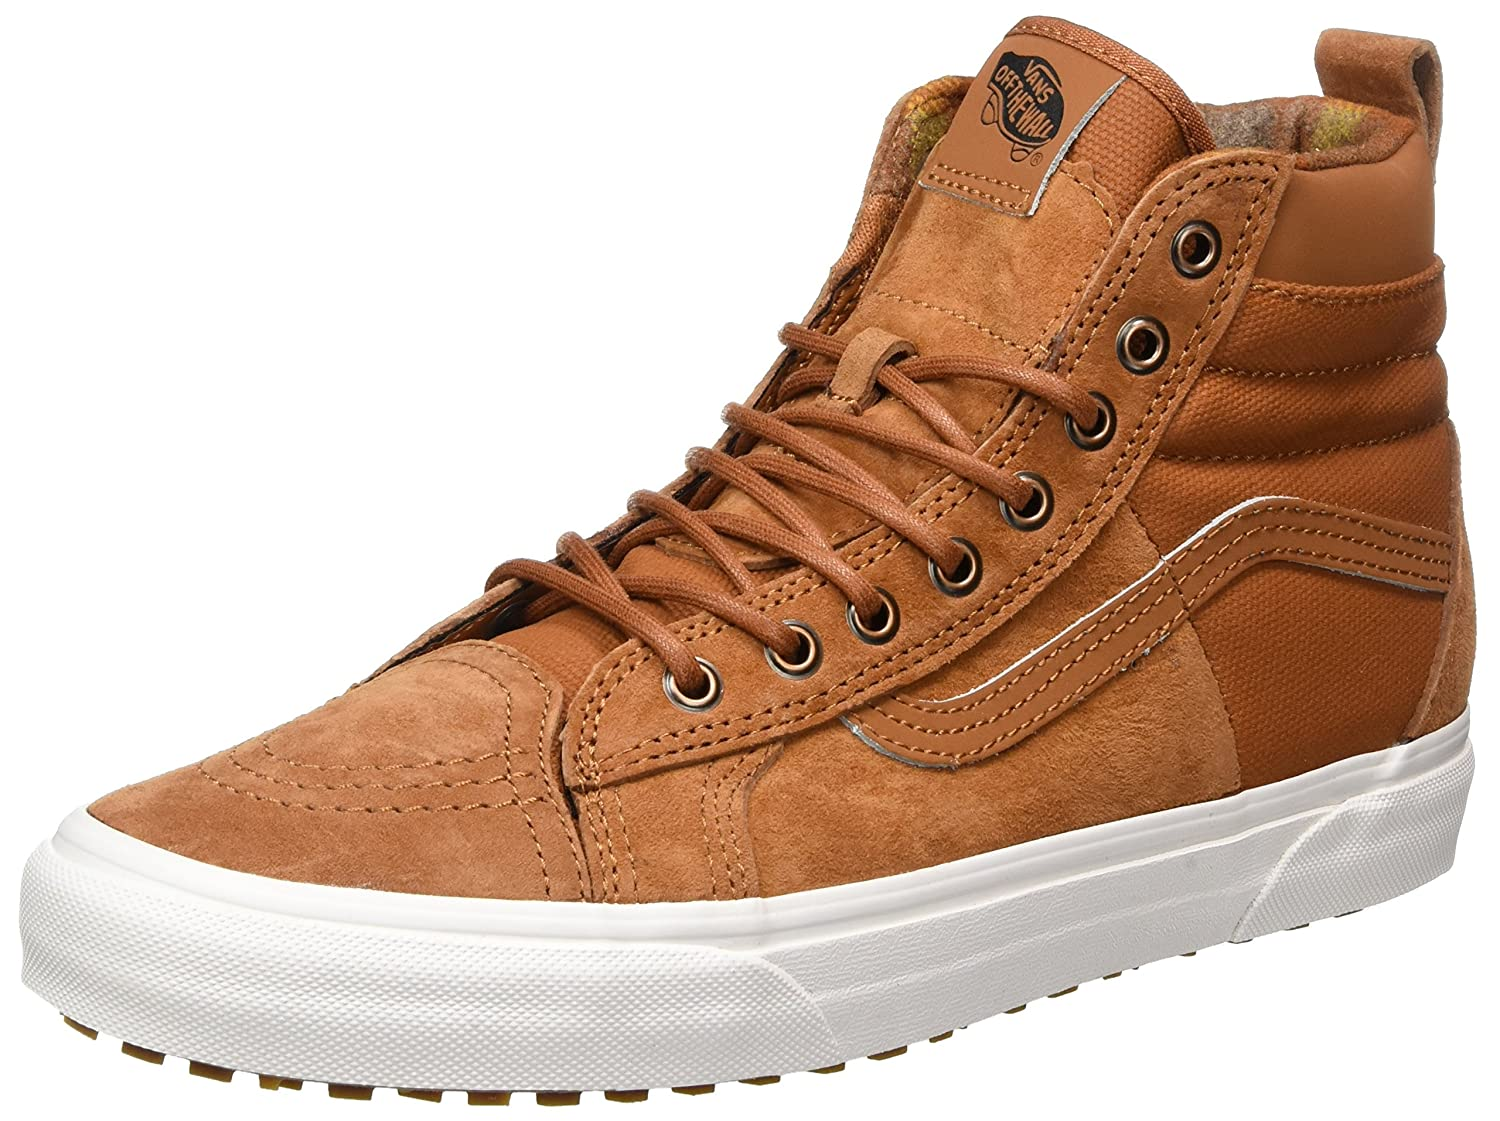 Vans Sk8-Hi Unisex Casual High-Top Skate Shoes, Comfortable and Durable in Signature Waffle Rubber Sole B01MYZ1W6O 8.5 Women / 7 Men M US|Glazed Ginger/Flannel